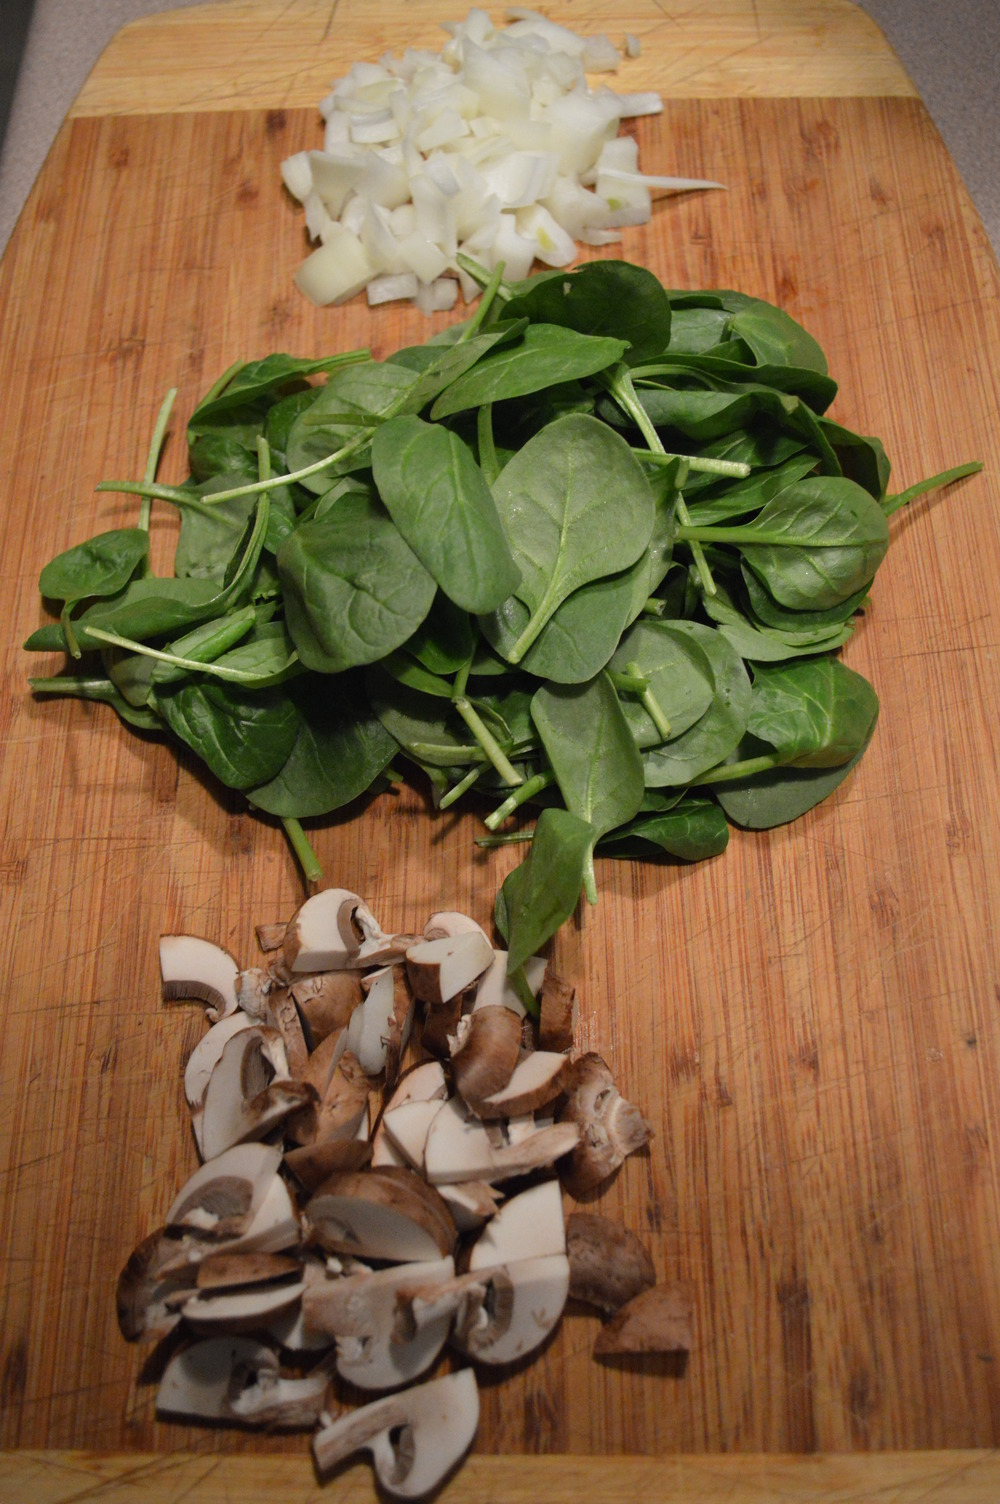 Spinach, Onion, Mushrooms -Savory Oatmeal Ingredients -